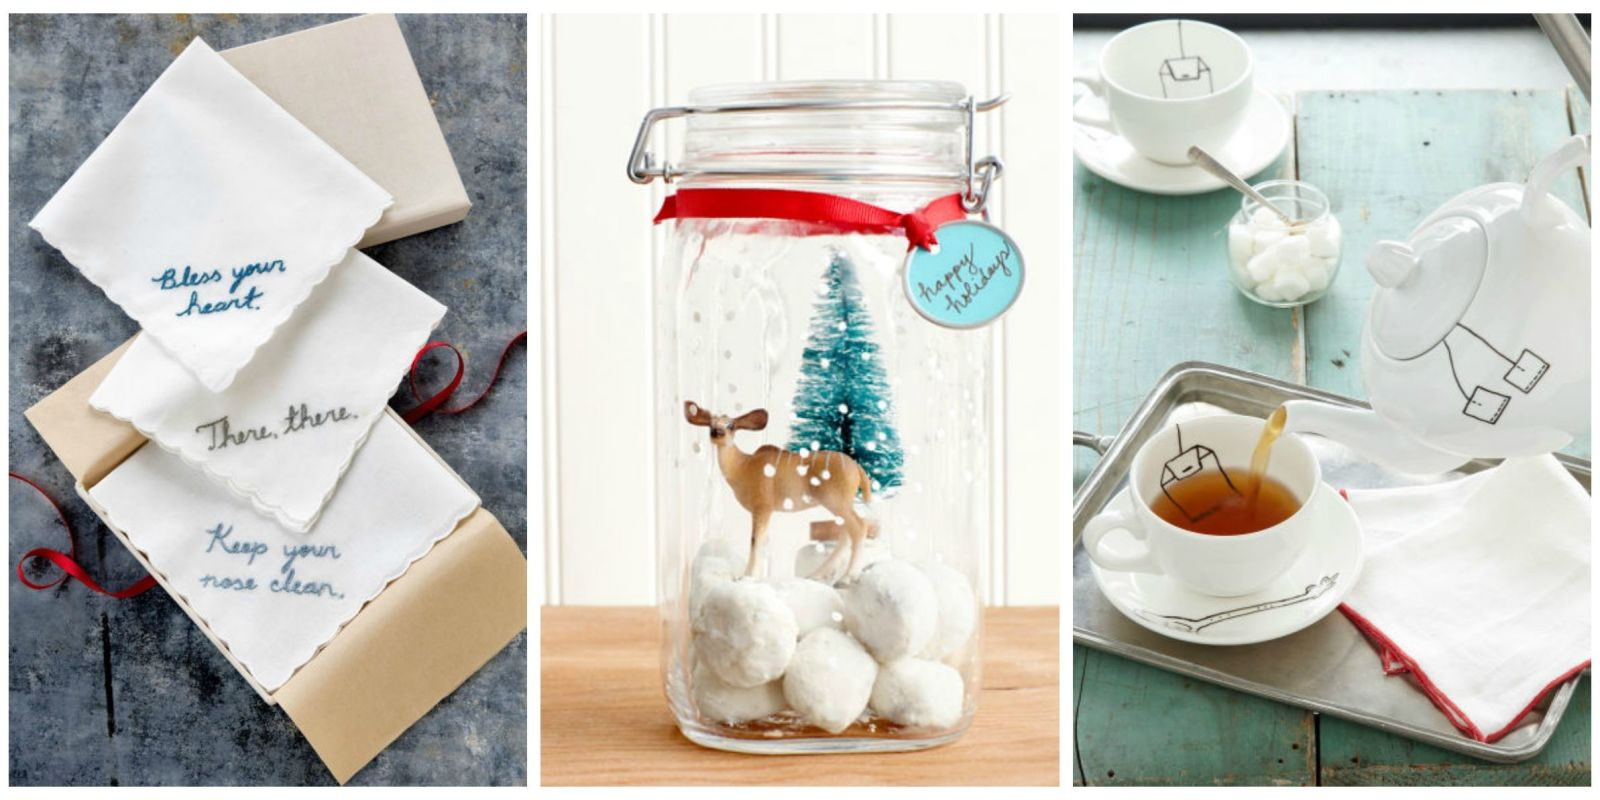 Cool handmade gift ideas for christmas